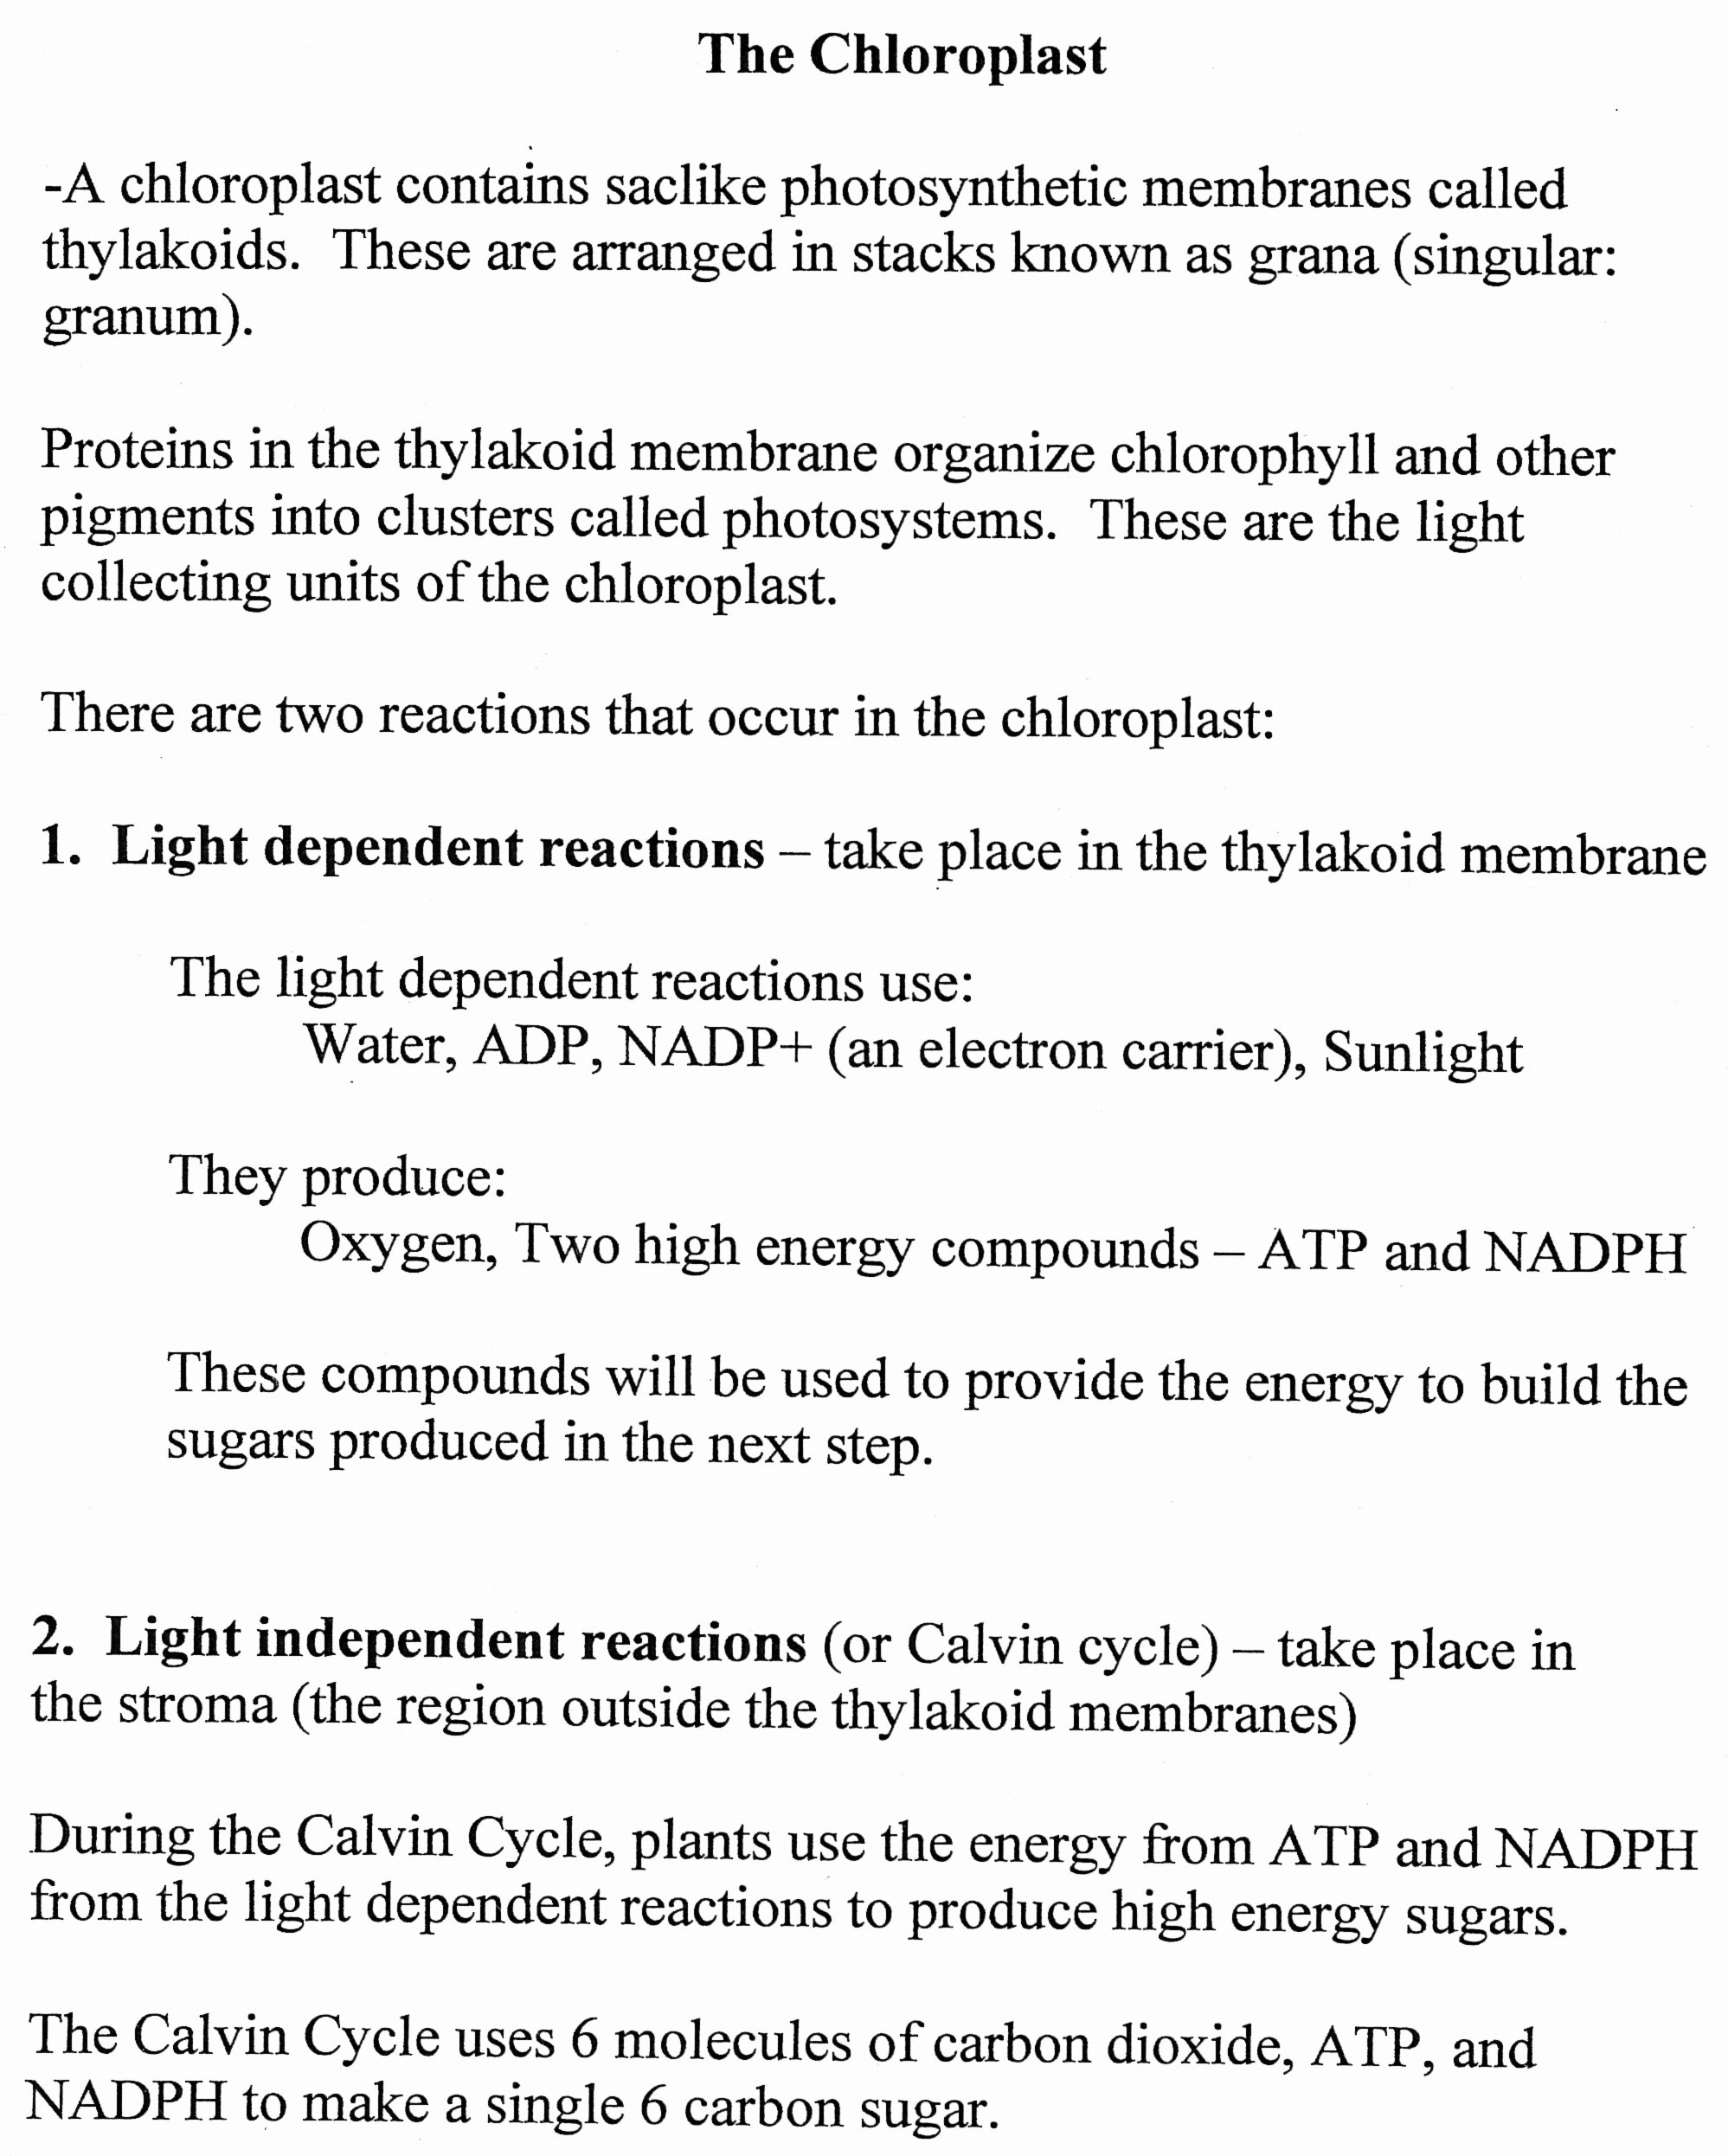 Photosynthesis Worksheet High School Lovely Biology Coursework Photosynthesis Myteacherpages X Fc2